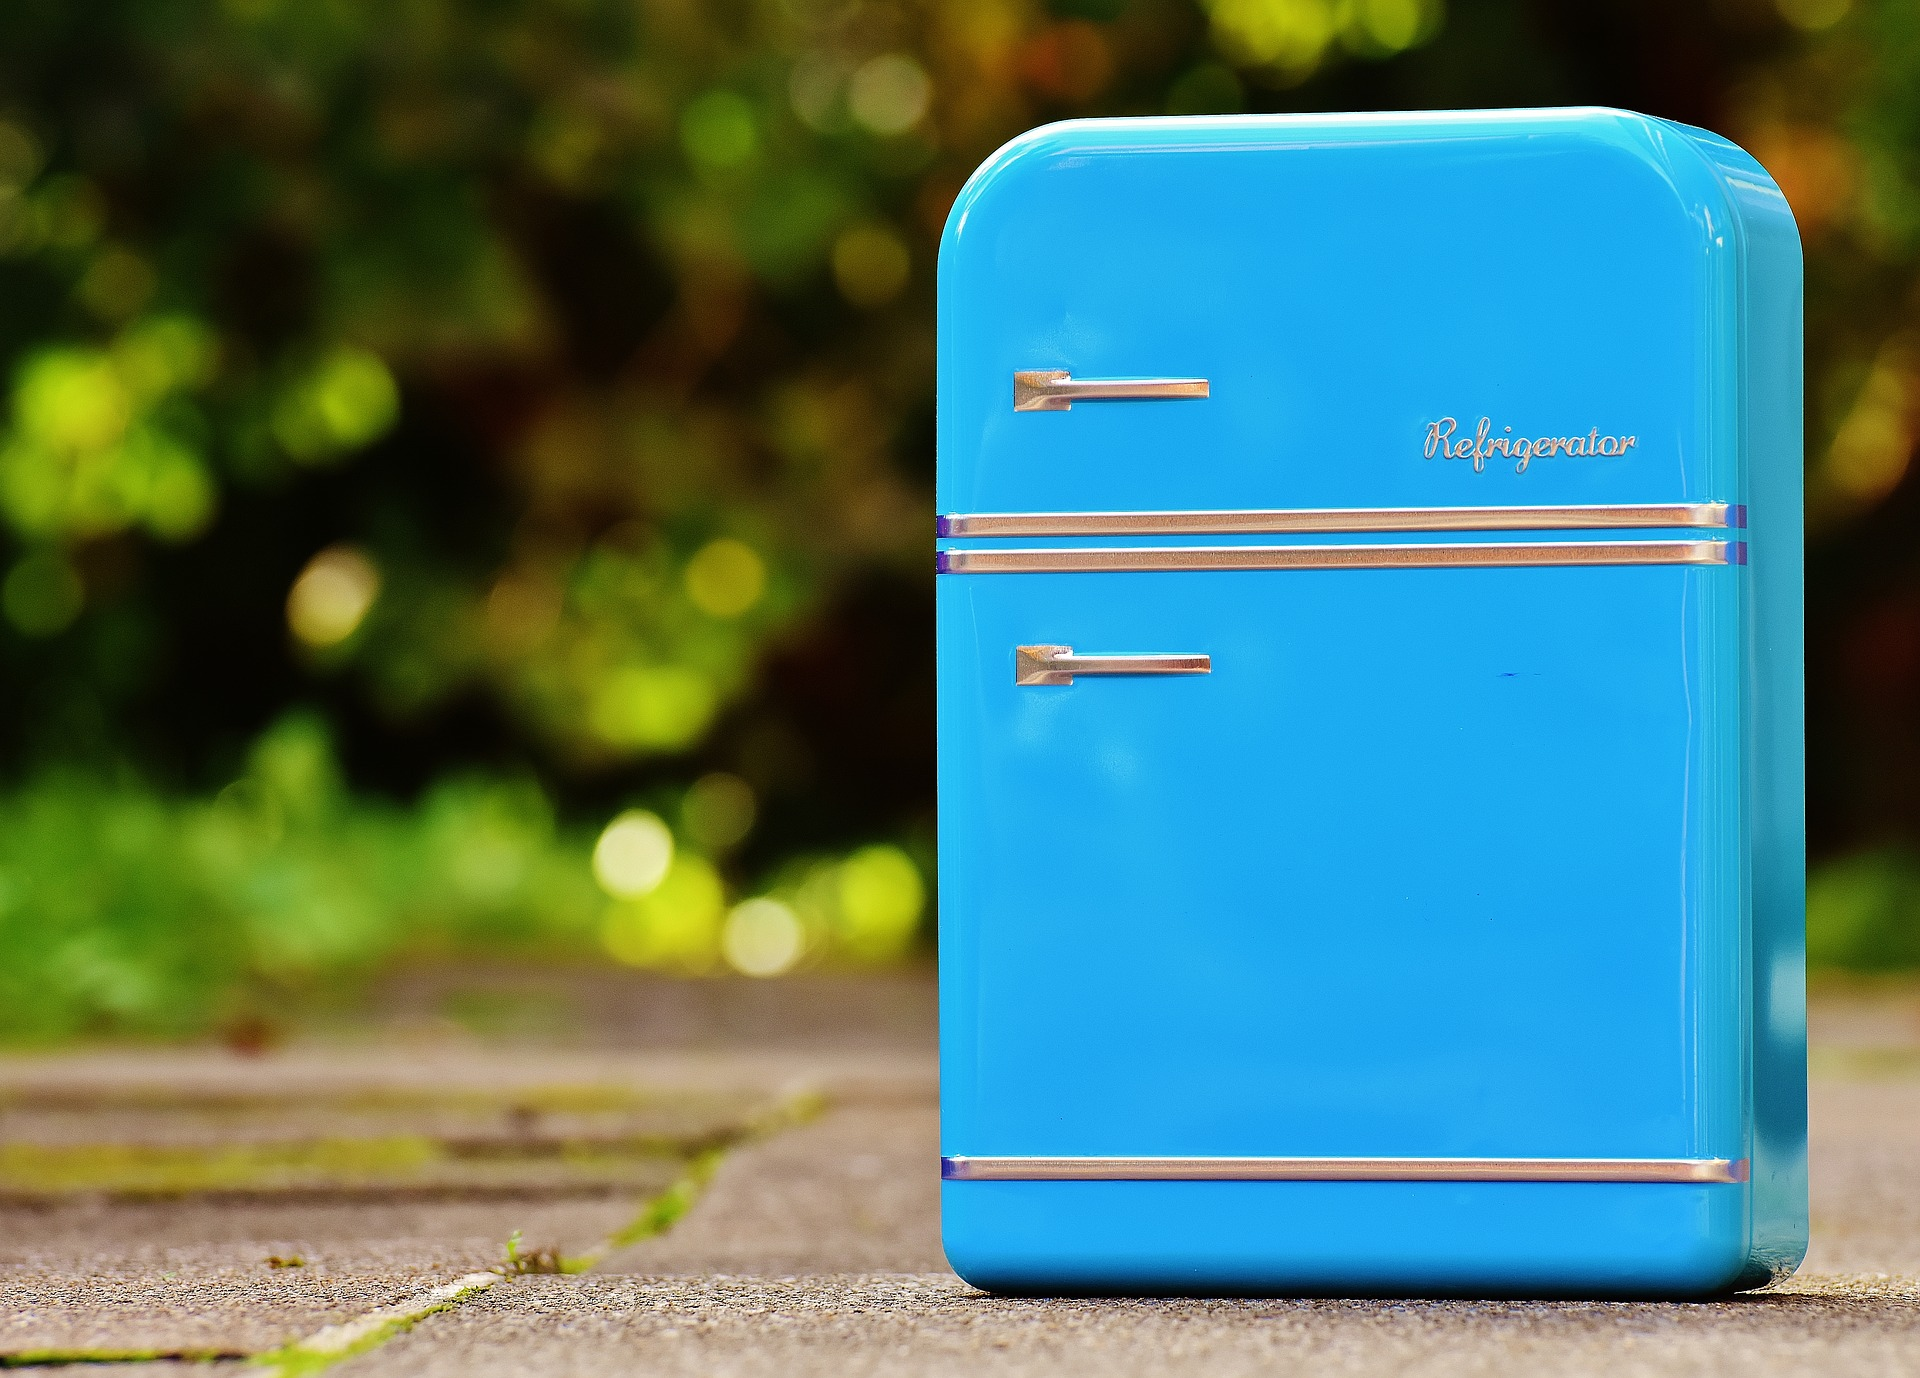 Mini blue refrigerator